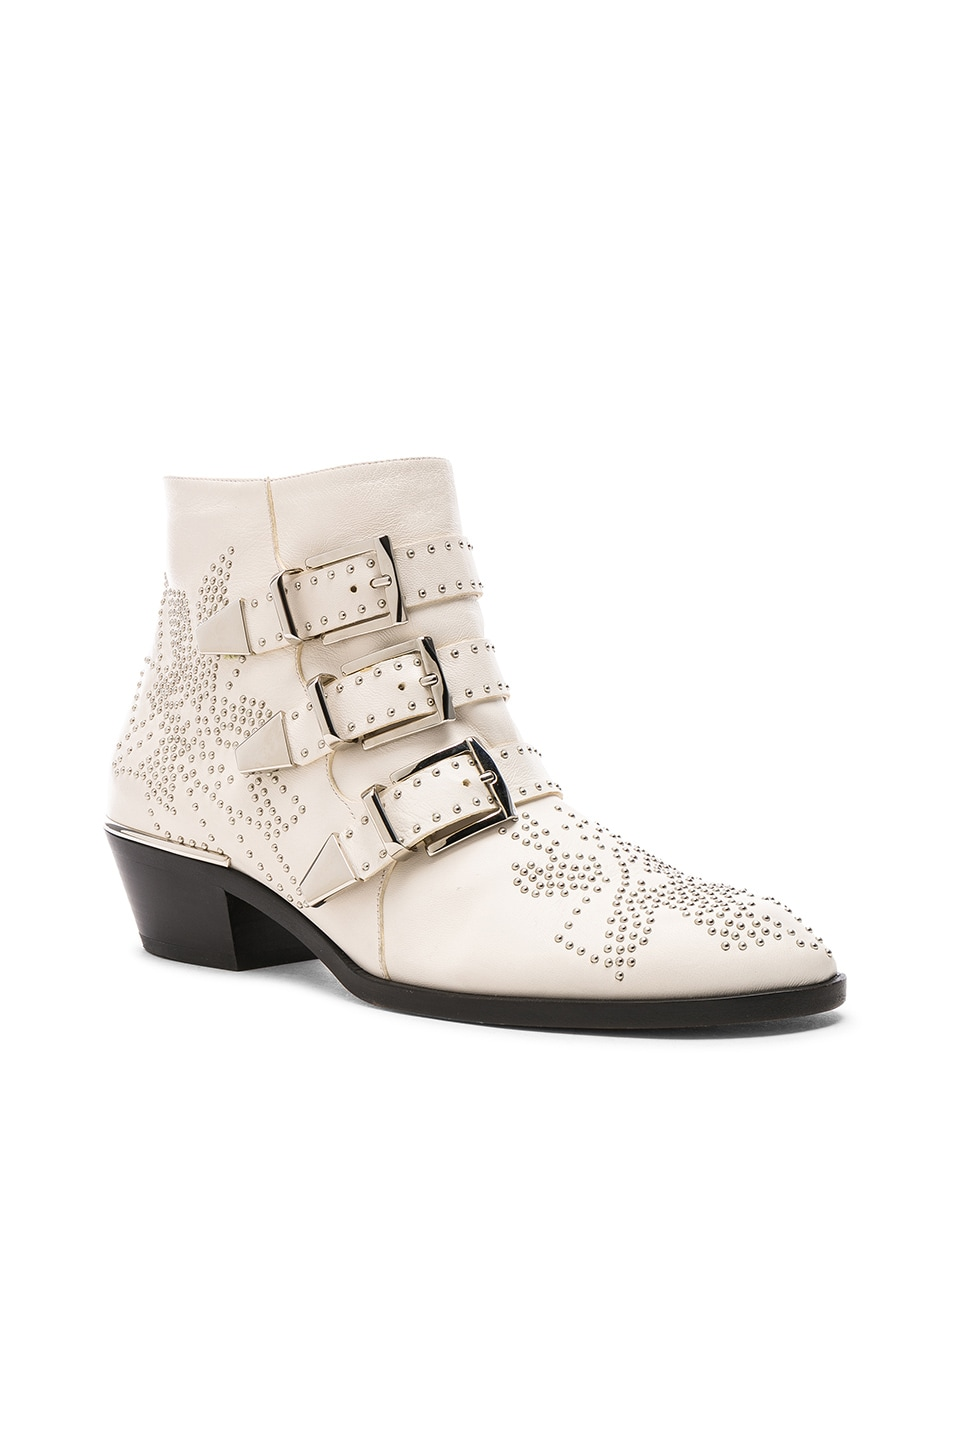 Image 2 of Chloe Susanna Leather Studded Ankle Boots in Cloudy White